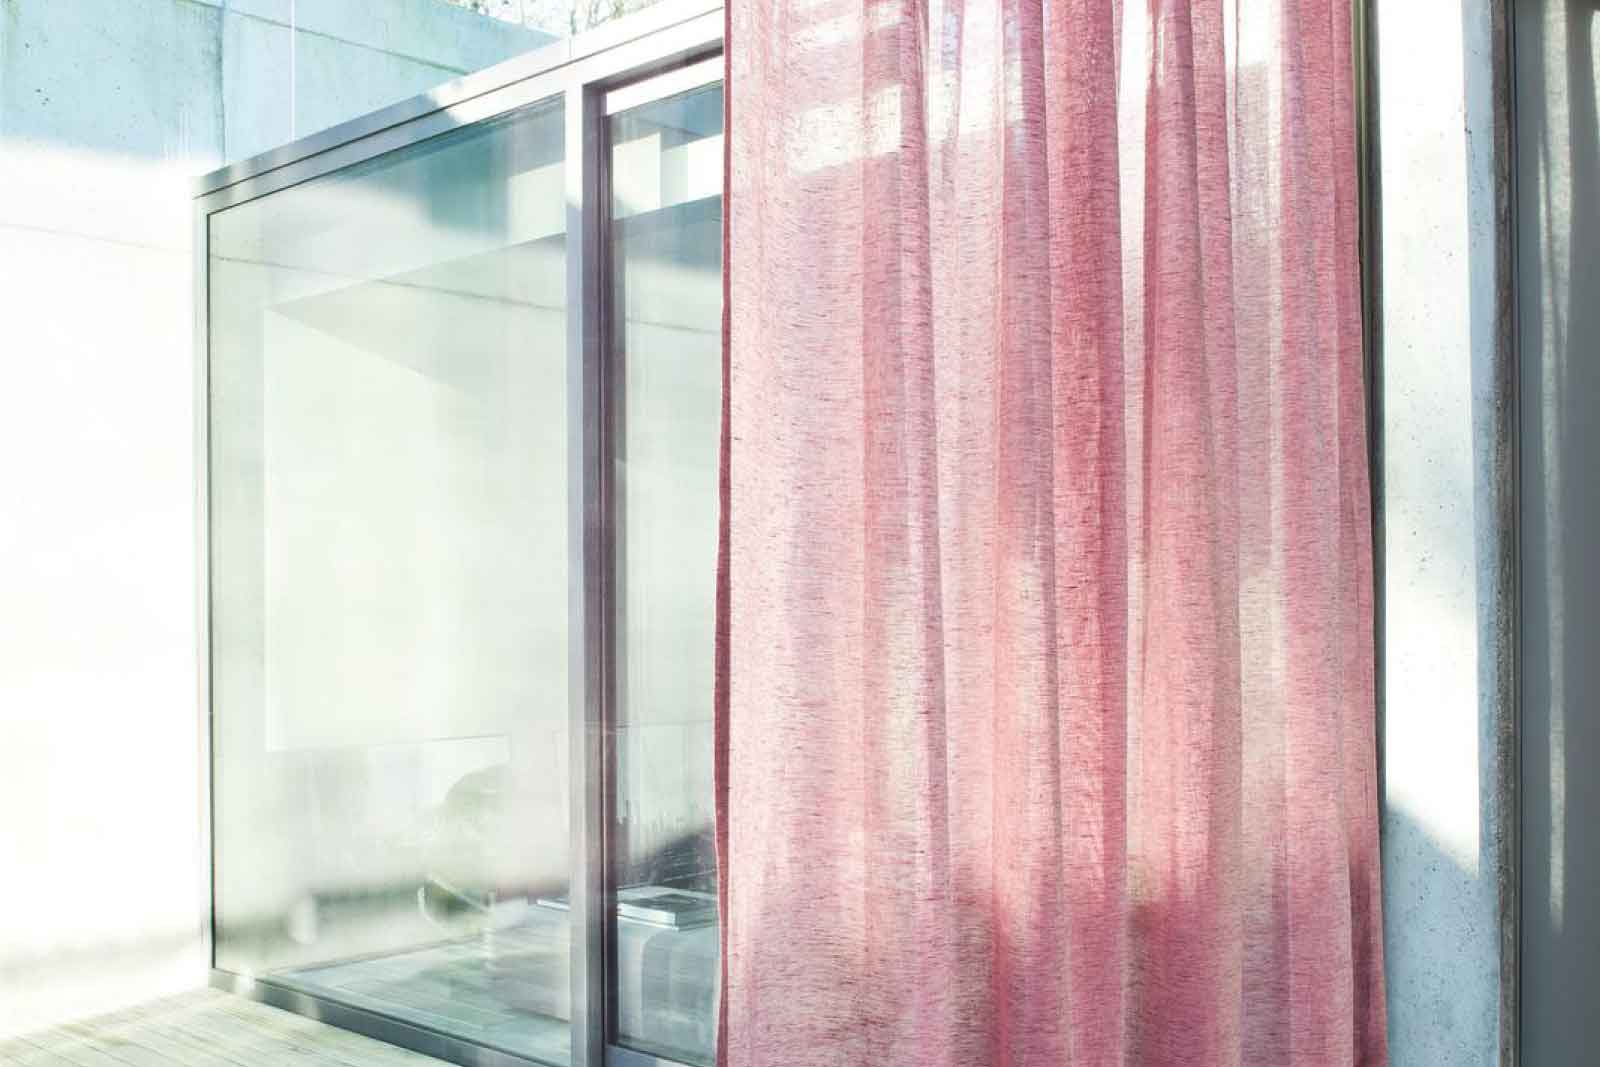 Curtain Designs Collection, Day Break